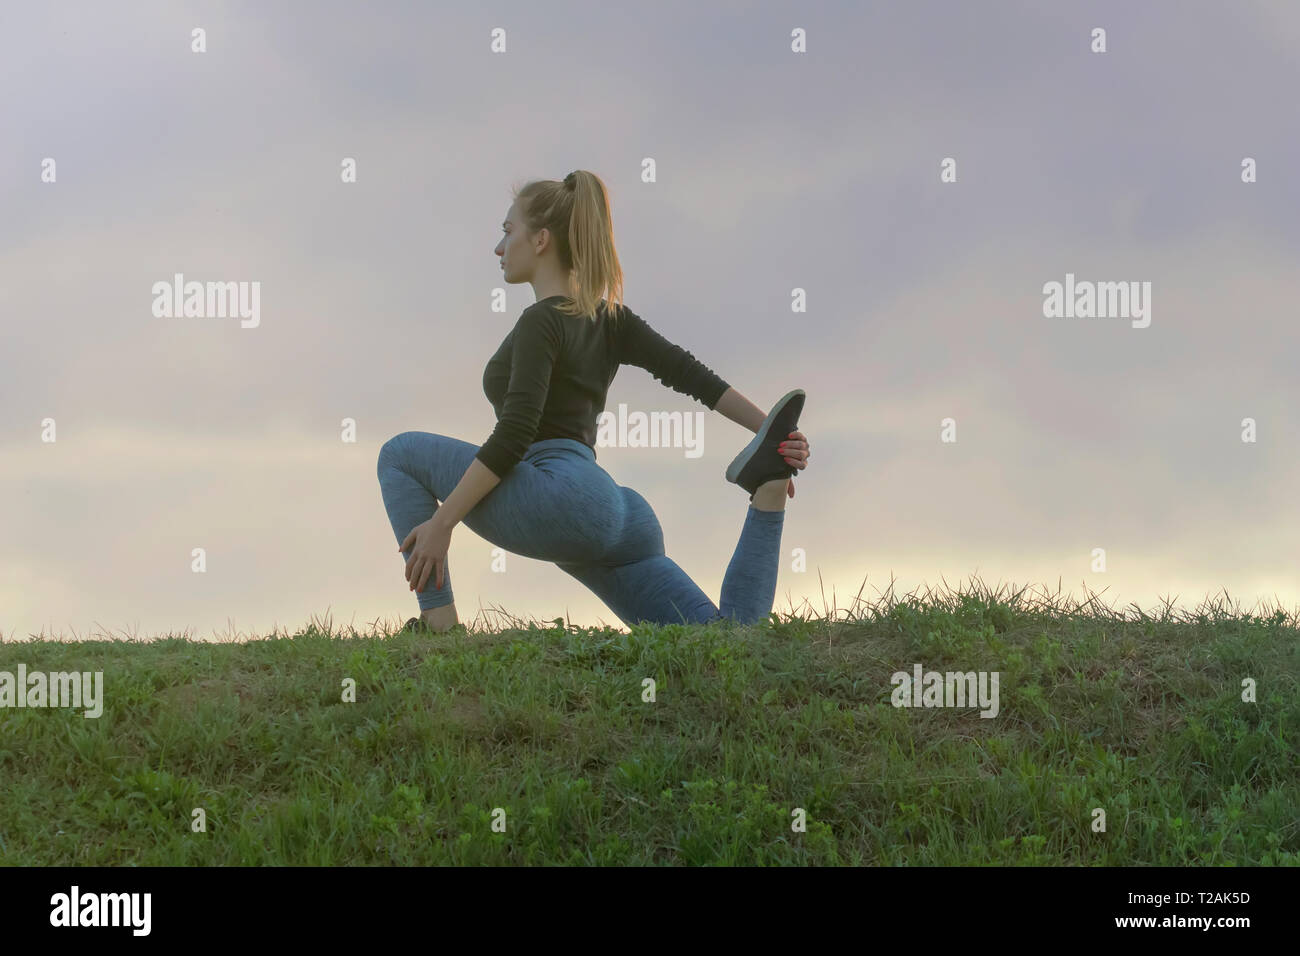 Young Attractive Woman Practicing Yoga, Working Out, Outdoor Morning Workout, Beautiful Sunrise. - Stock Image